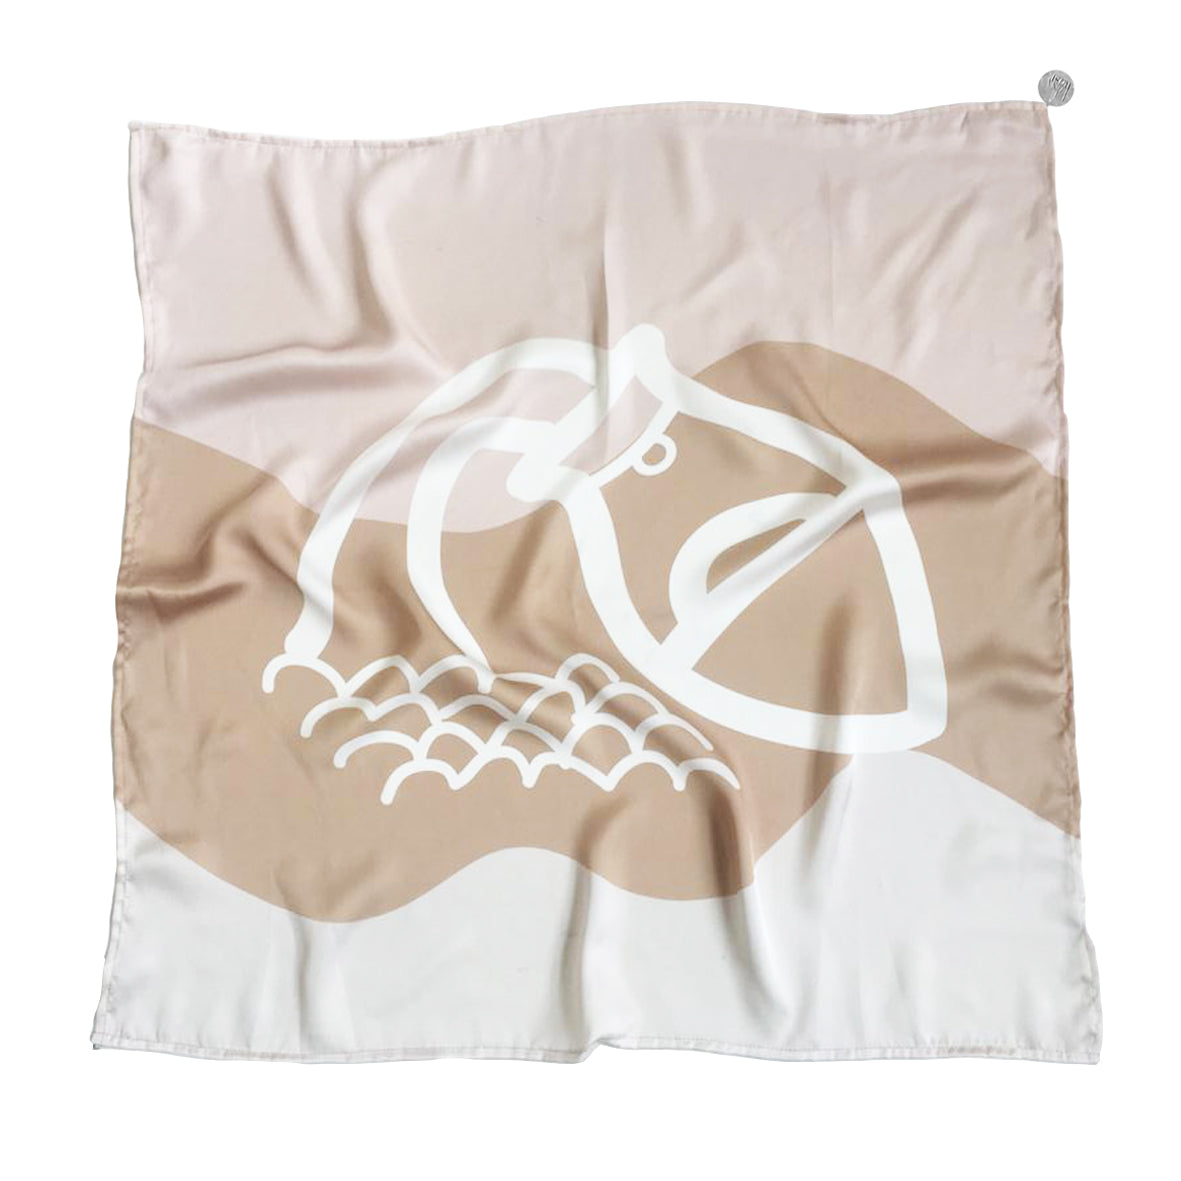 Luna & Rose Aquarius Zodiac Scarf Gift Box